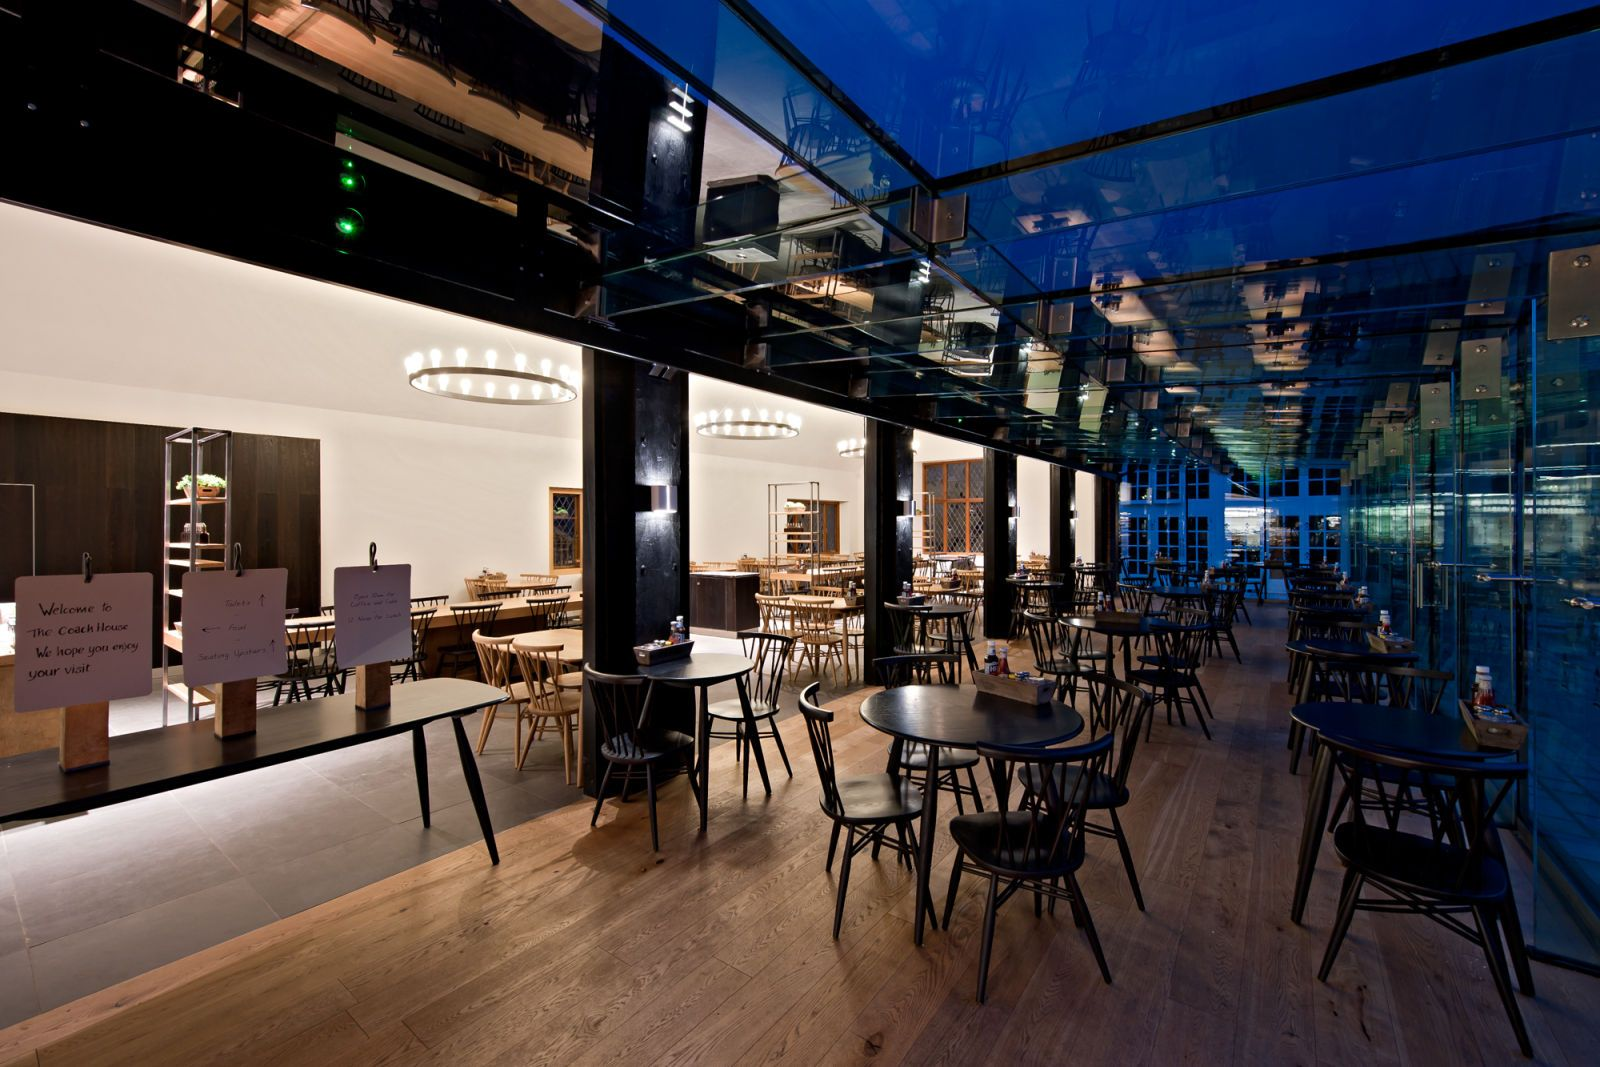 Amazing restaurant interiors by shh appealing coach house restaurant atmosphere in the night